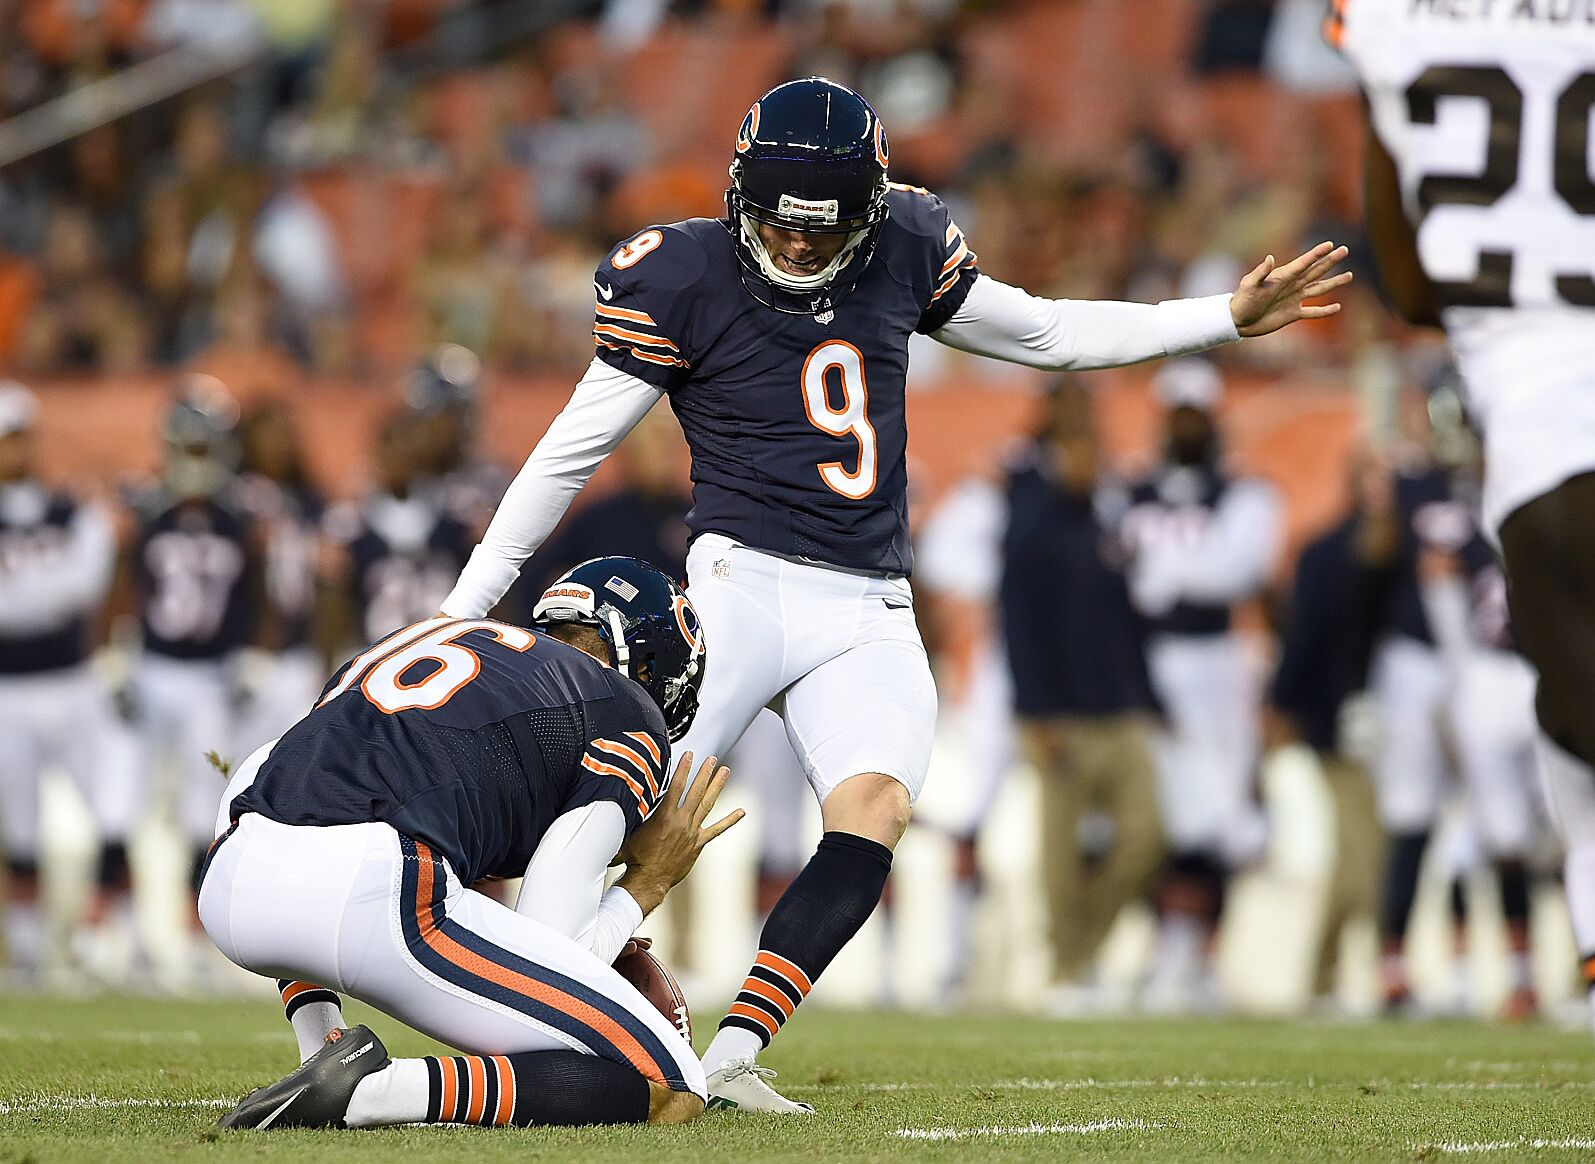 newest d8479 65d38 Chicago Bears: 3 signs Robbie Gould could return home